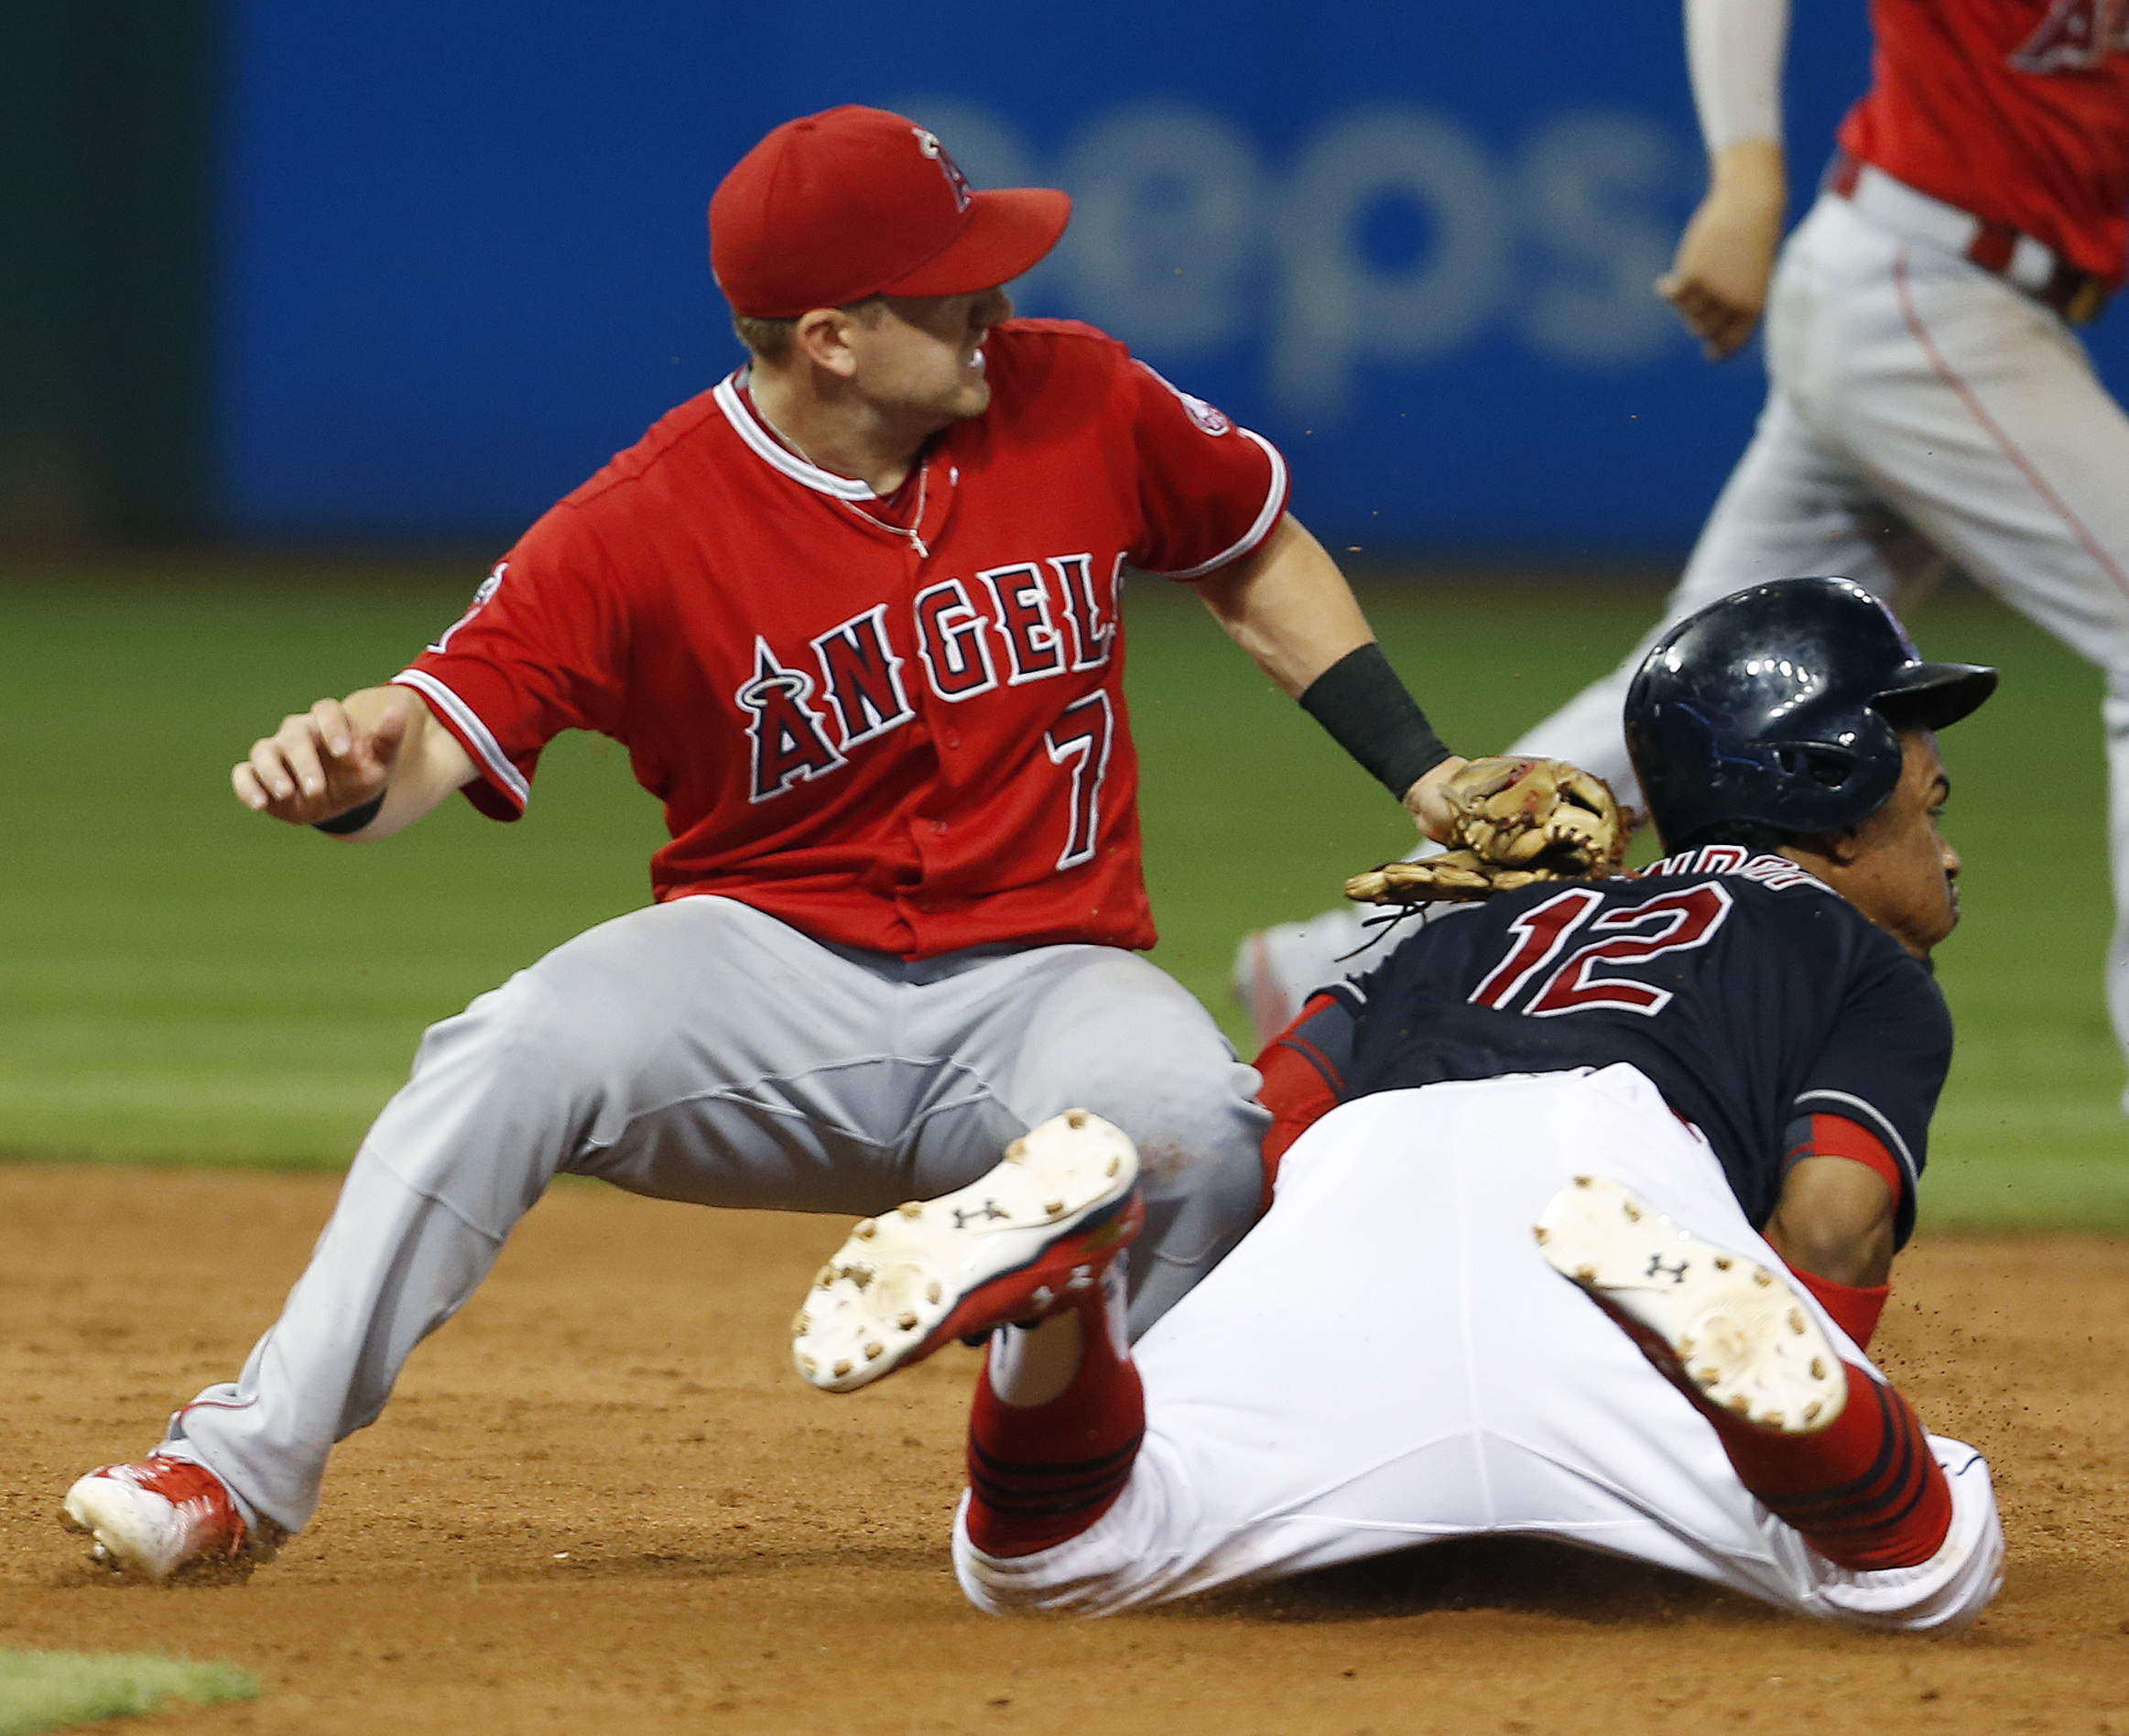 Cleveland Indians' Francisco Lindor (12) steals second base as Los Angeles Angels' Cliff Pennington (7) covers during the sixth inning of a baseball game Friday, Aug. 12, 2016, in Cleveland. Lindor's stolen base was the team's eighth of the game. (AP Phot